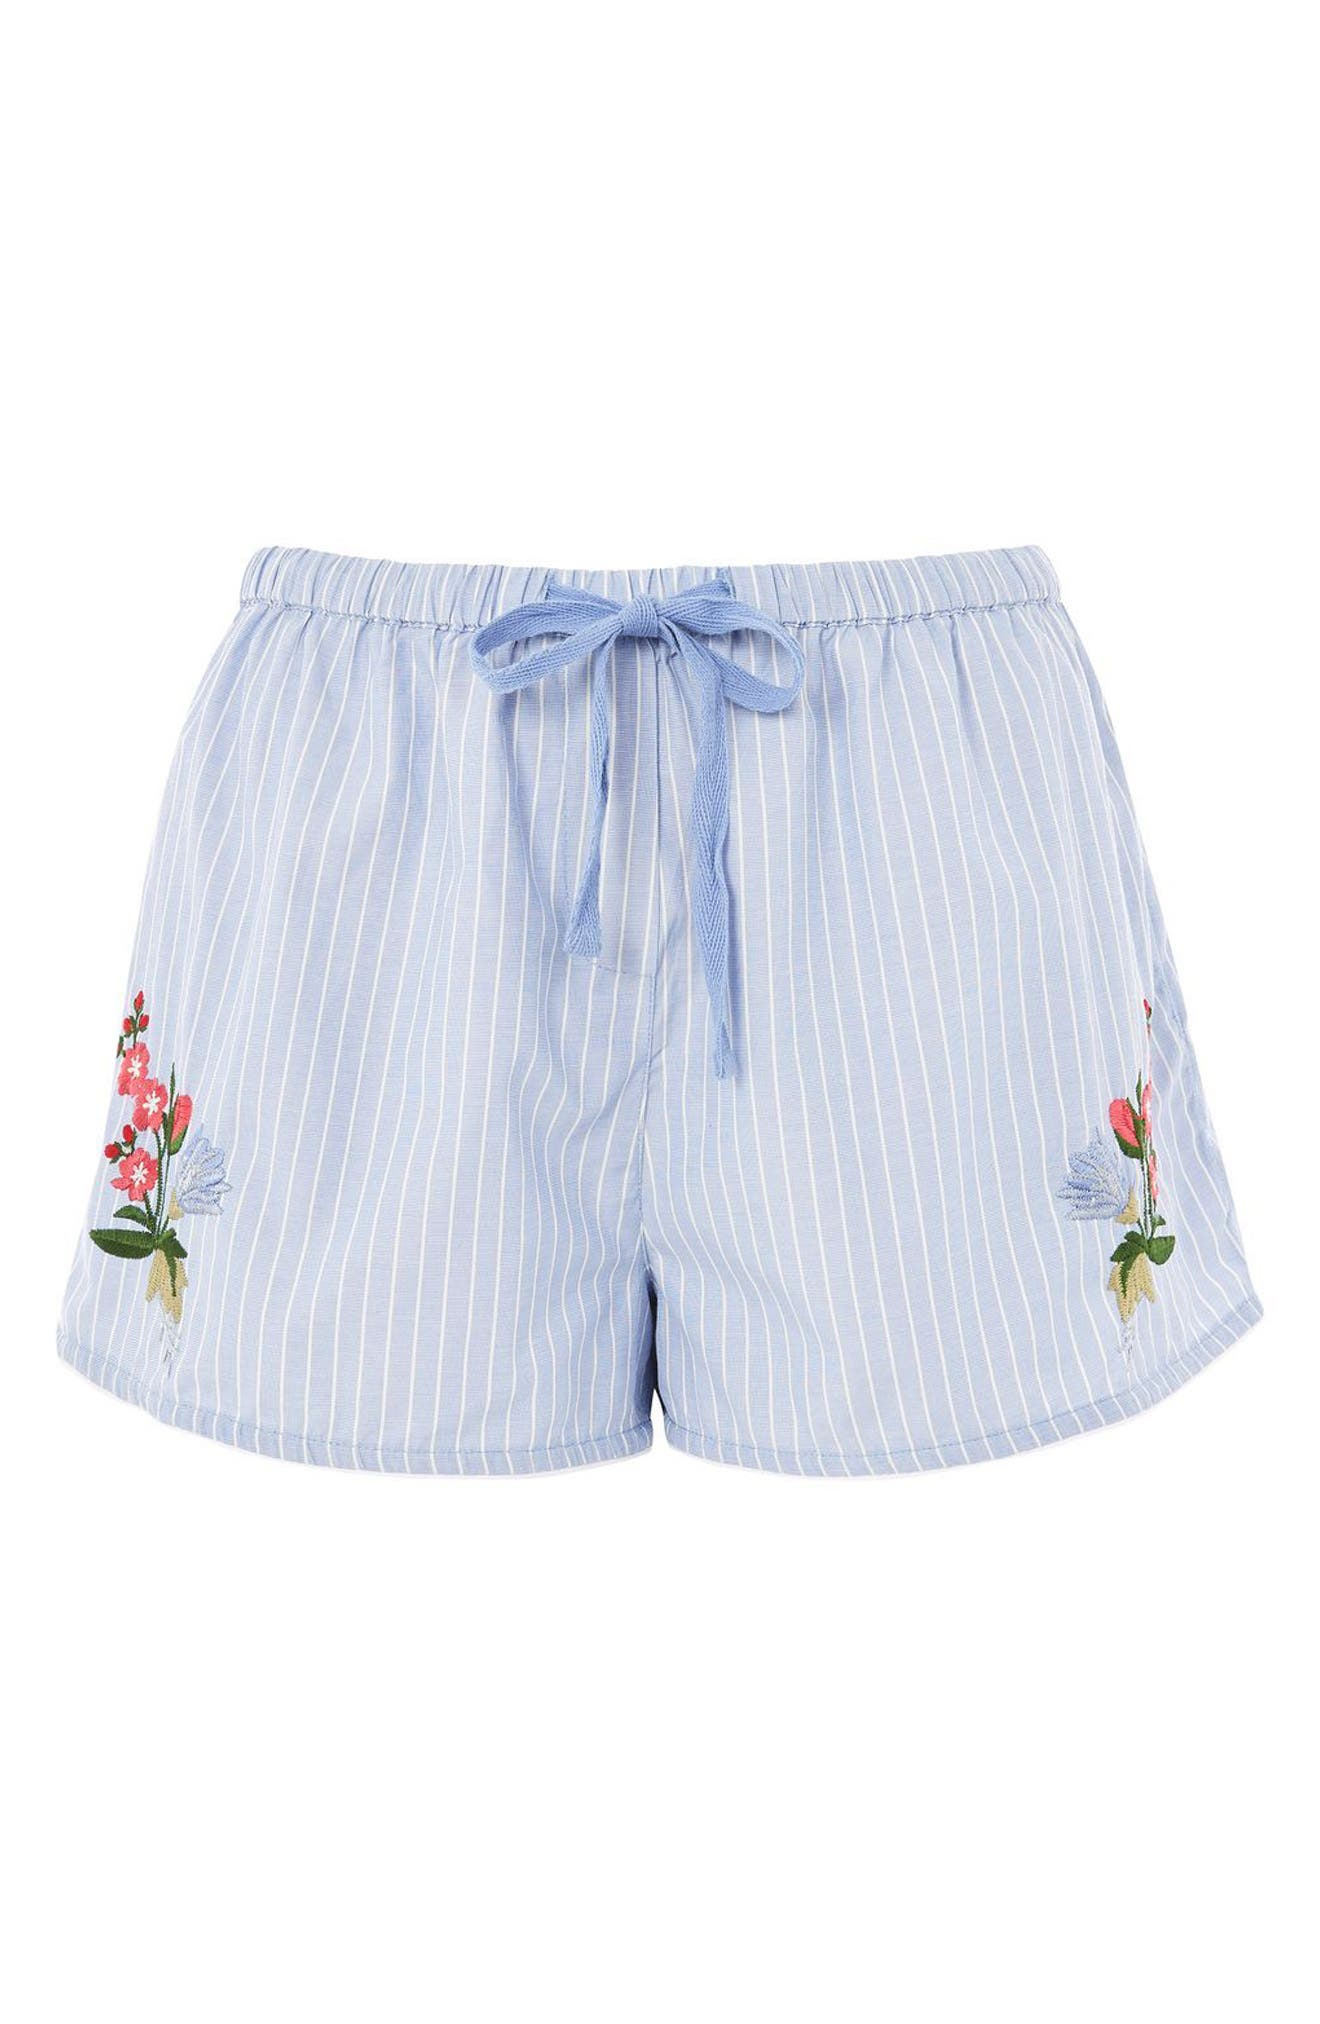 Alternate Image 1 Selected - Topshop Embroidered Lounge Shorts